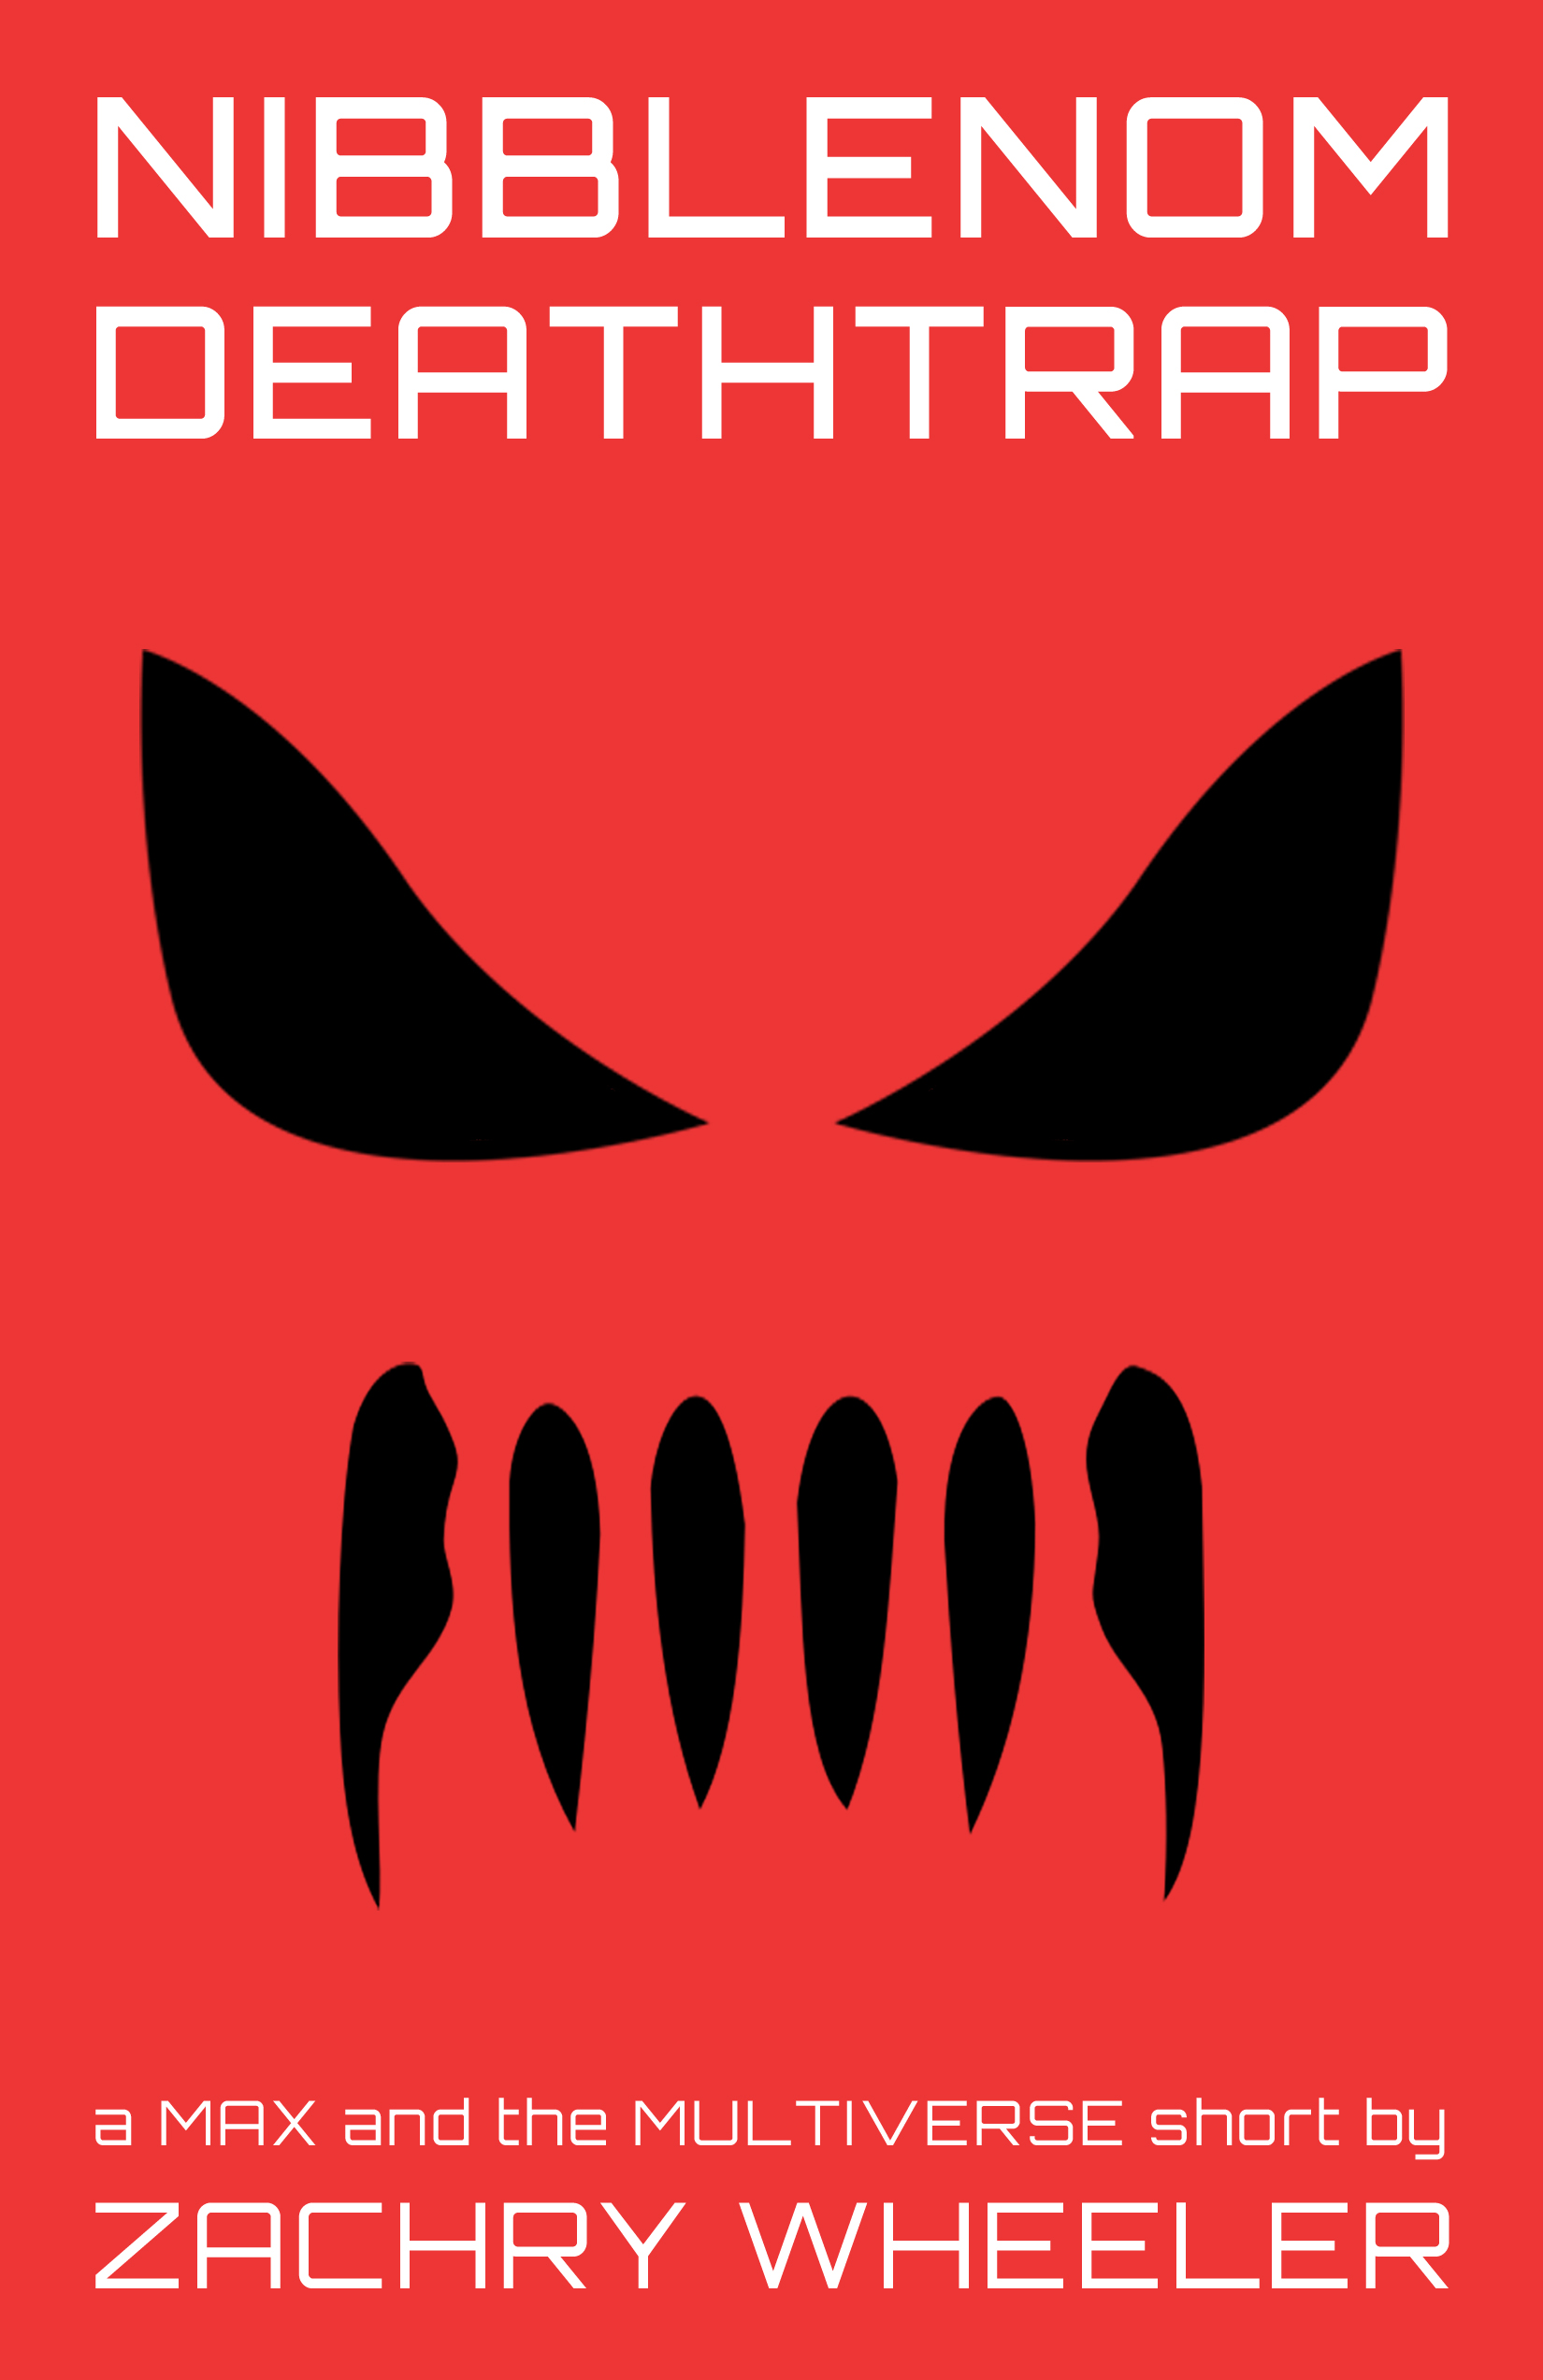 Learn more about Nibblenom Deathtrap (a Max and the Multiverse short)